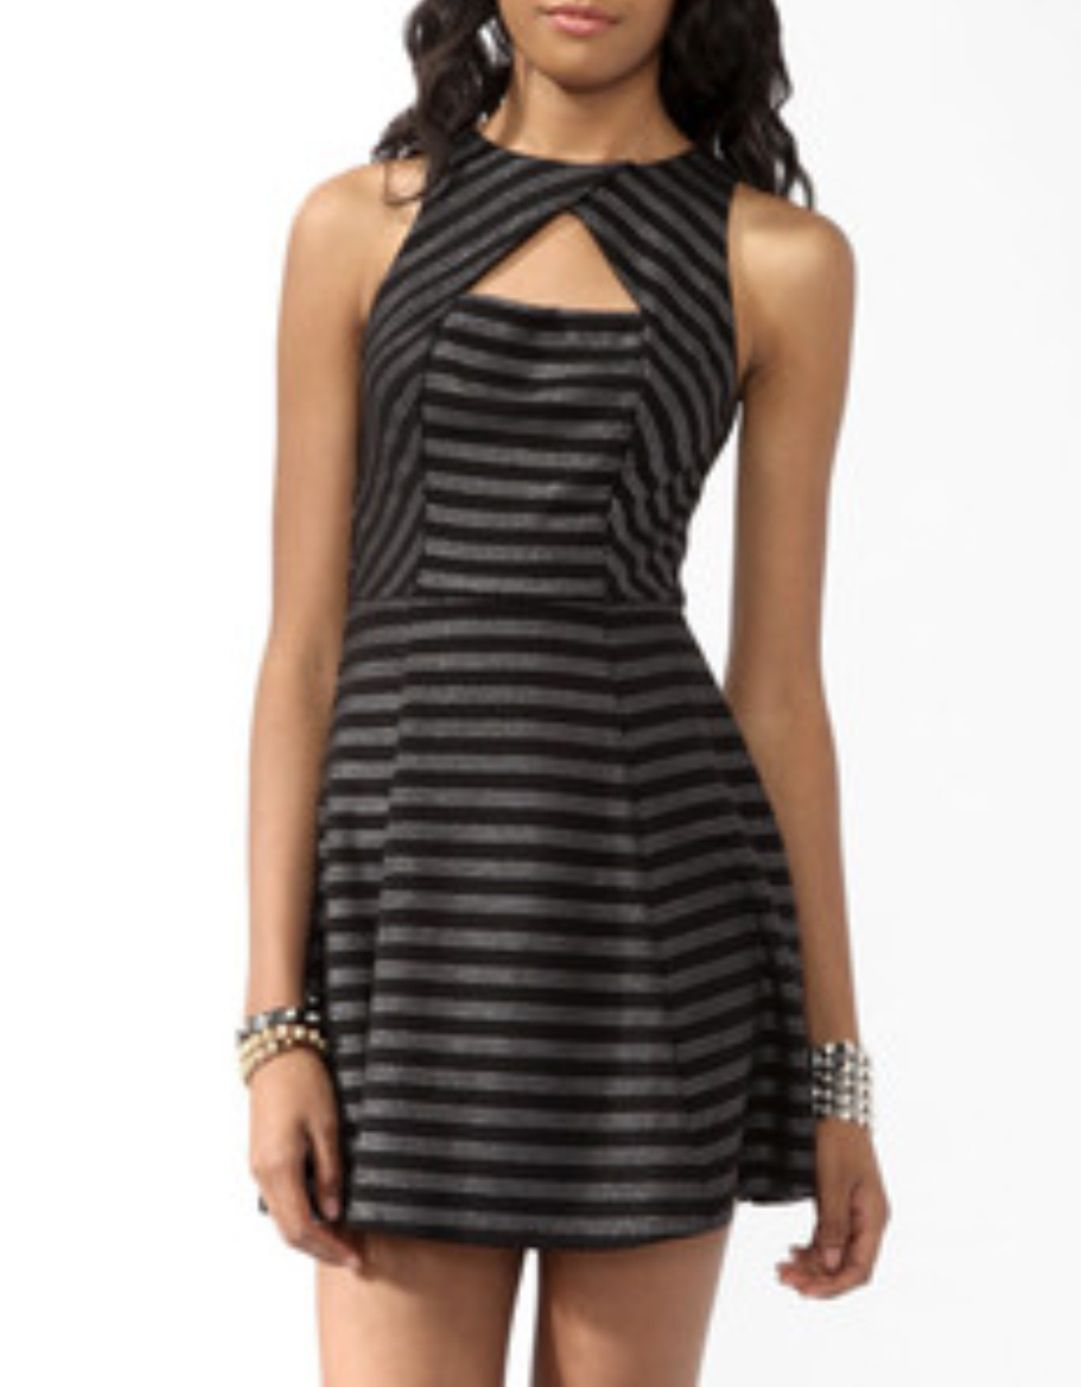 From Forever 21 My Sy Dc Night Out Dress